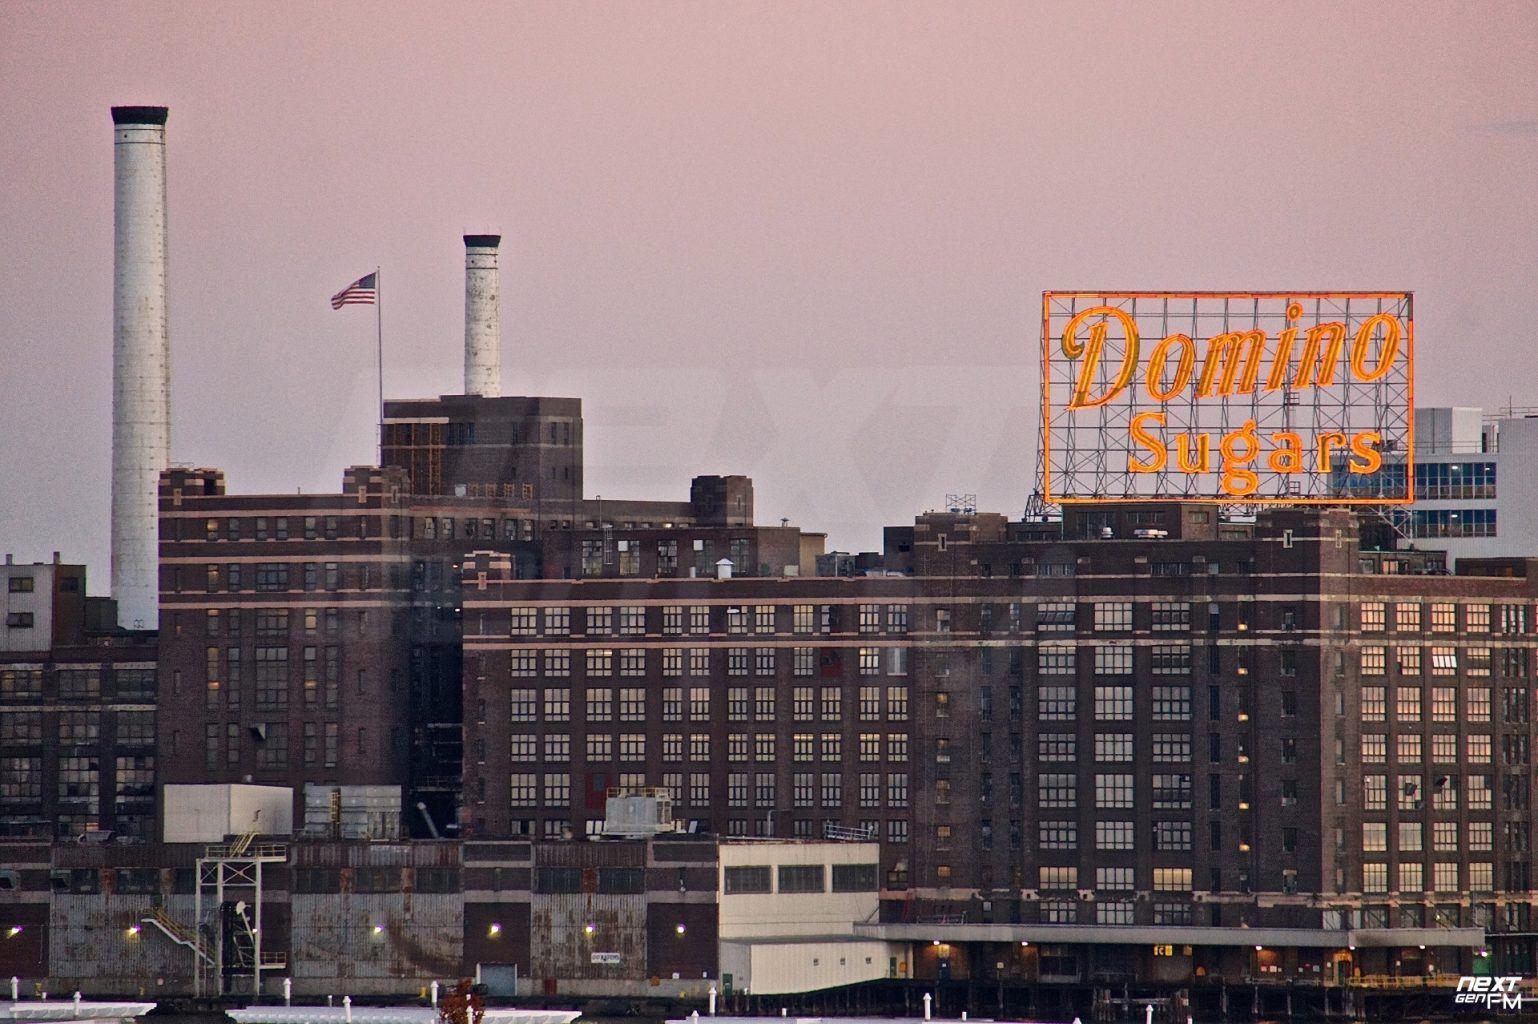 Nextgen FM Domino Sugar Factory Baltimore Copyright Nextgen FM Ask permission for use